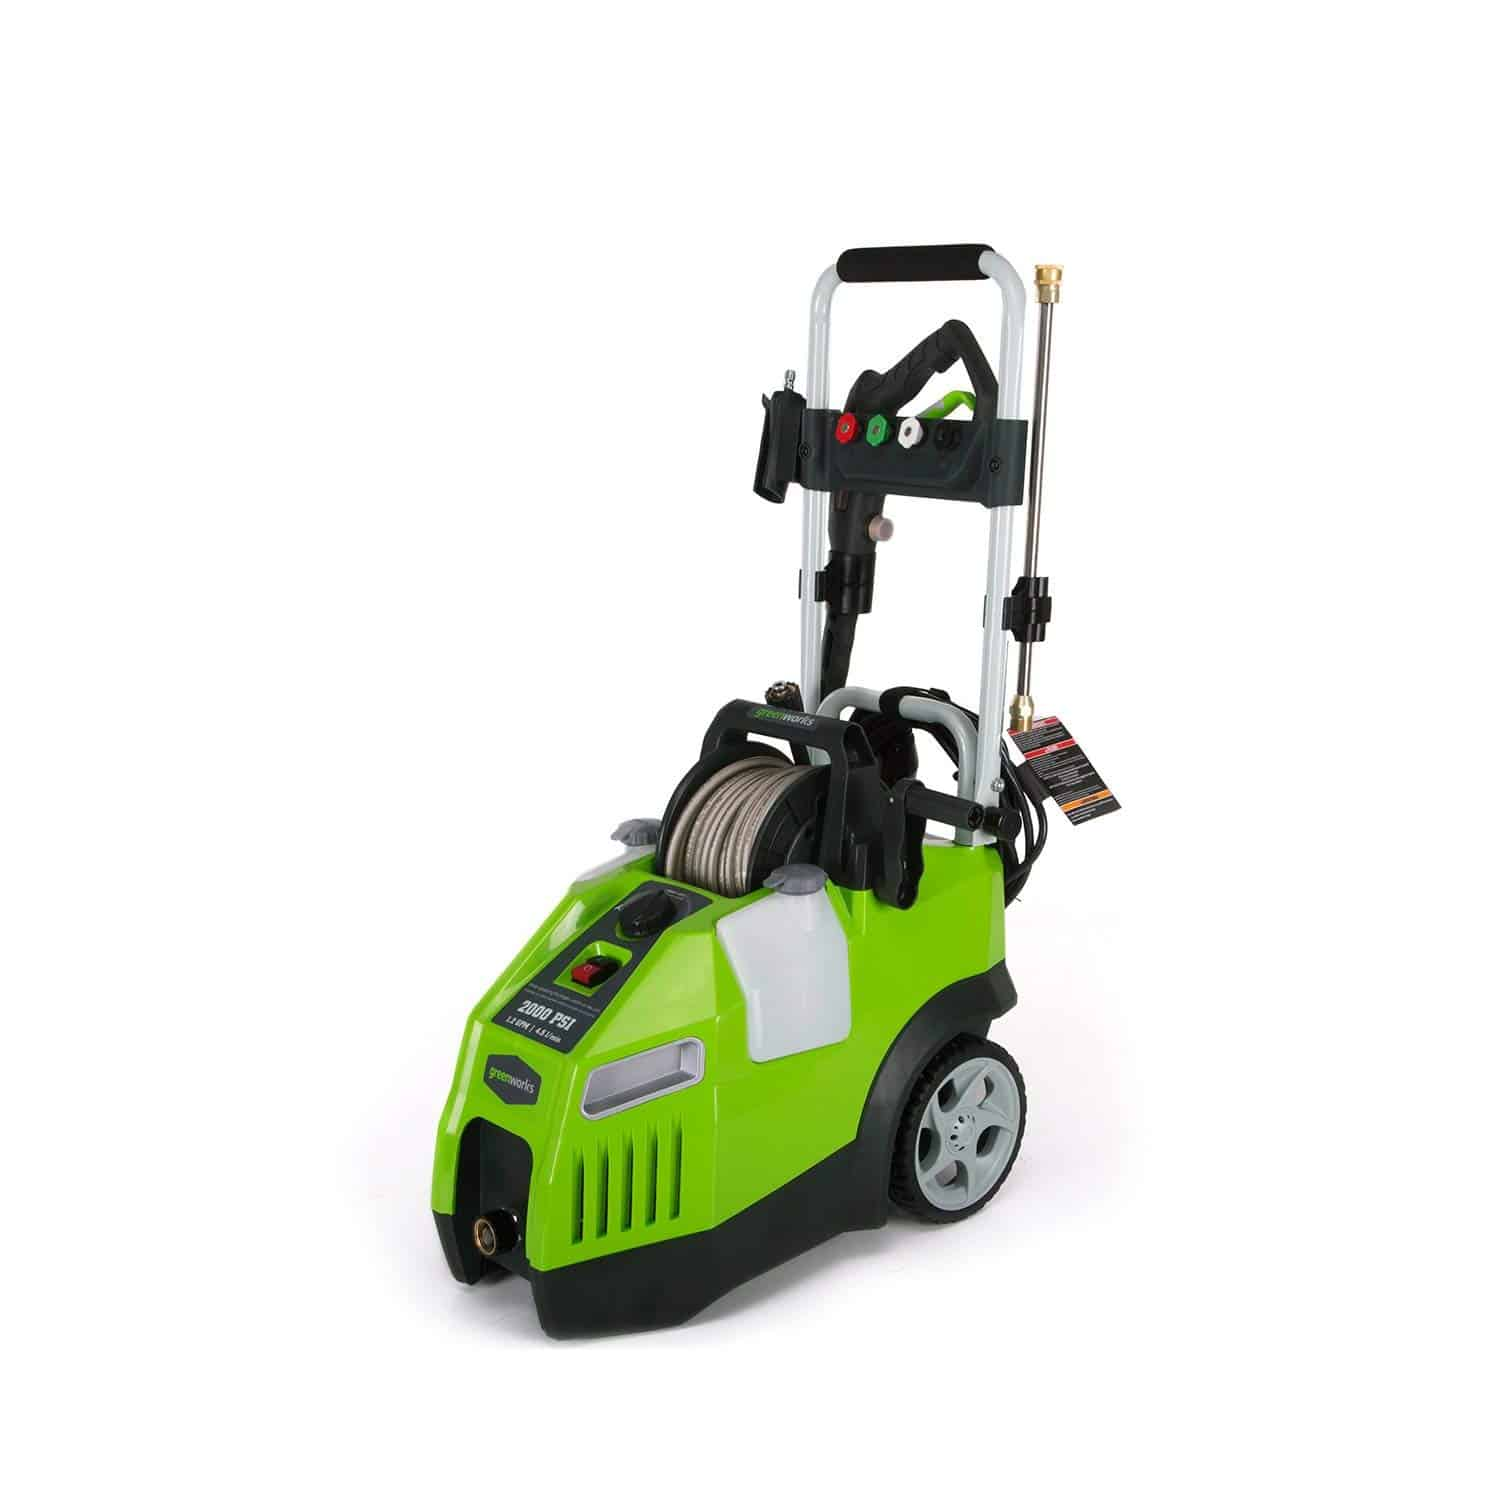 Faaqidaad : Greenworks 2000 psi electric power washer reviews